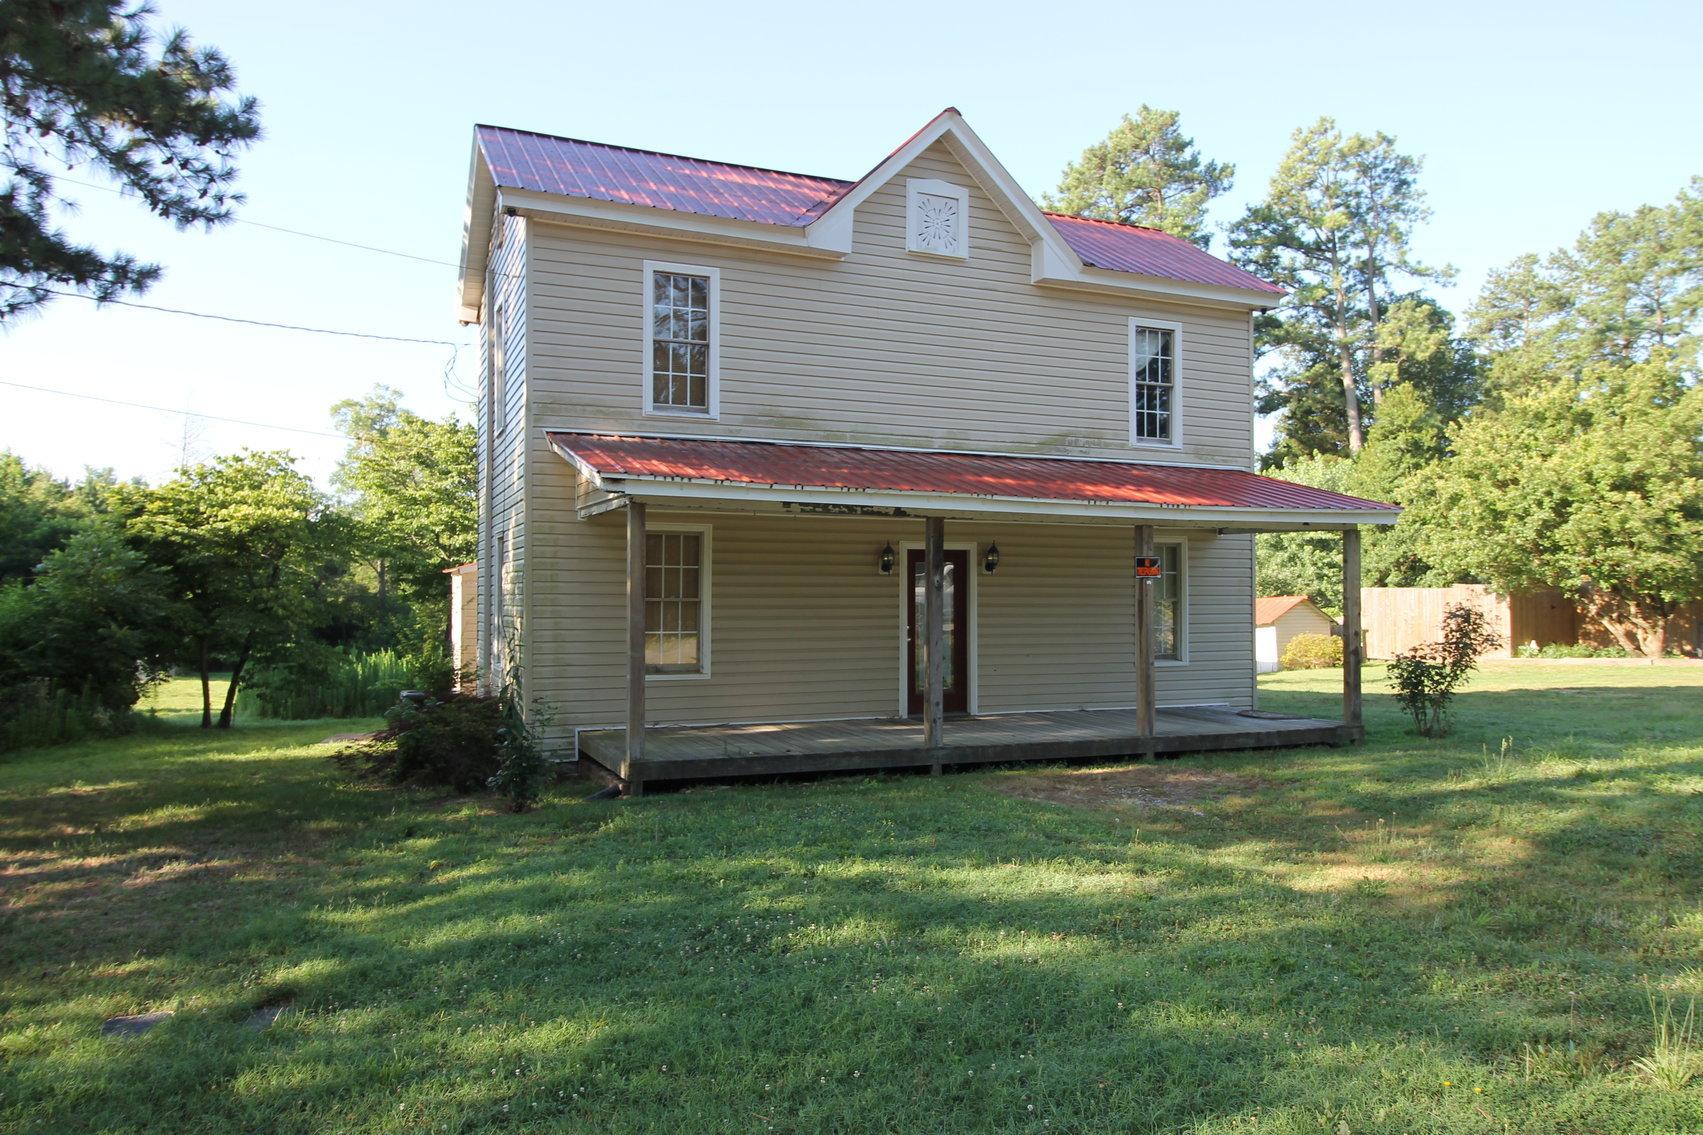 Image for Home - 3 BR/1 BA home on .3 +/- acre lot in Town of Kenbridge, VA